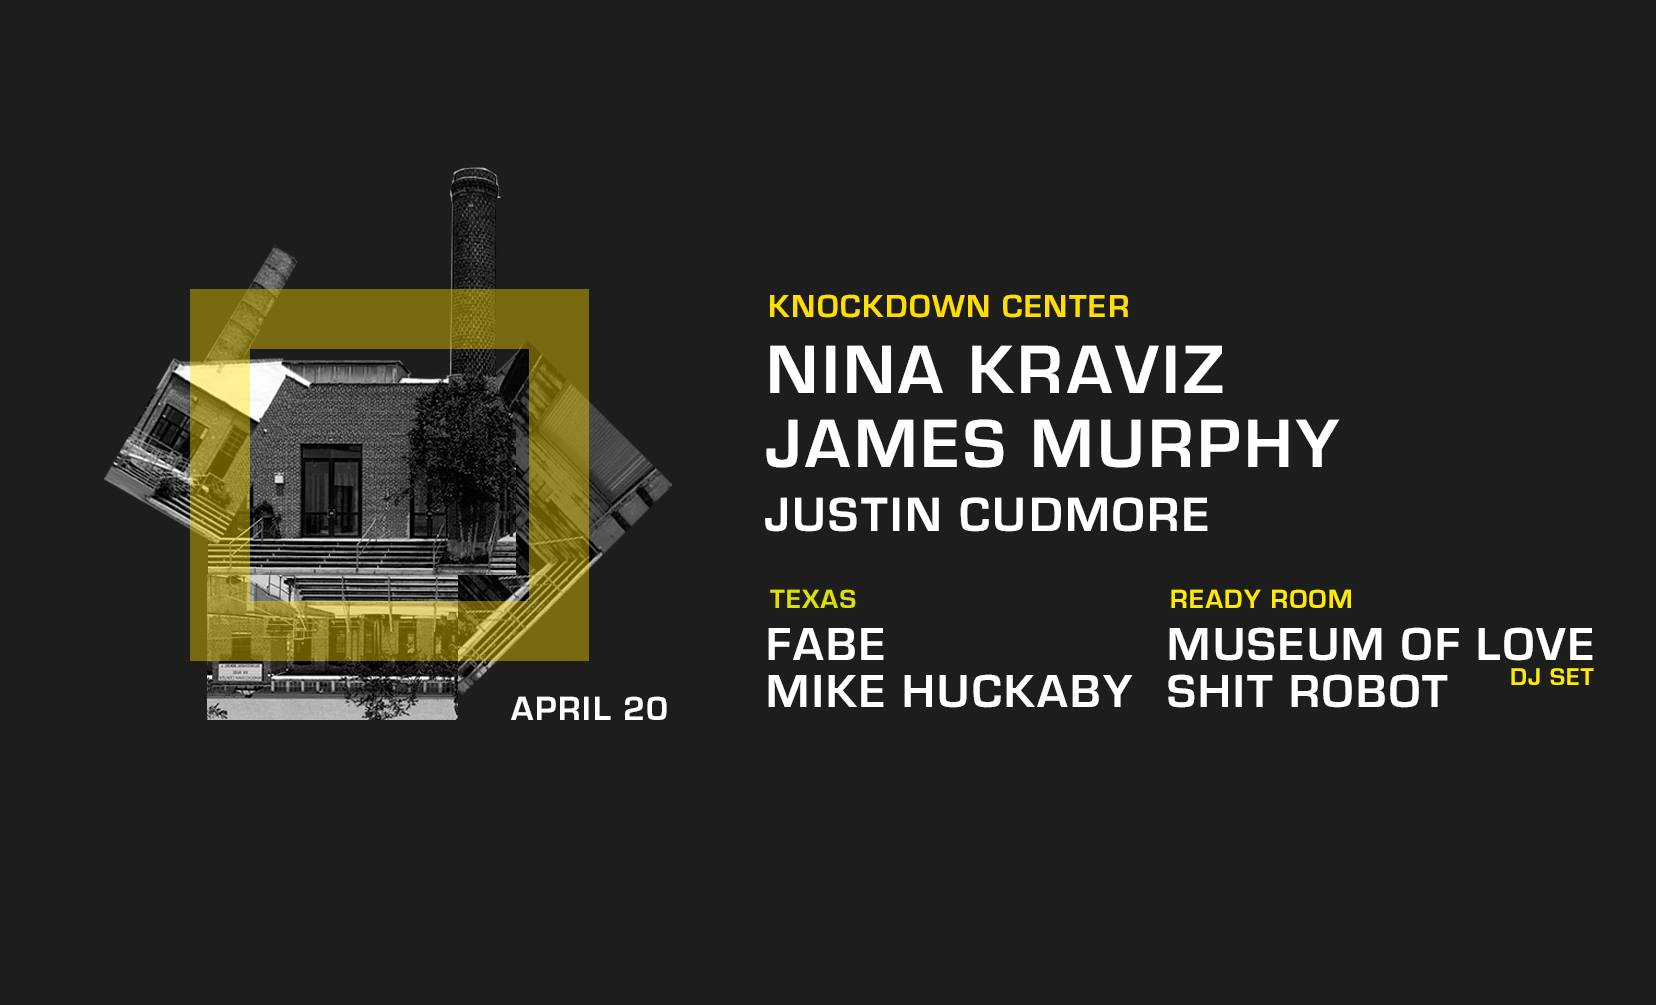 nina kraviz james murphy justin cudmore mike huckaby Knockdown Center  robbie lumpkin promotions.jpg